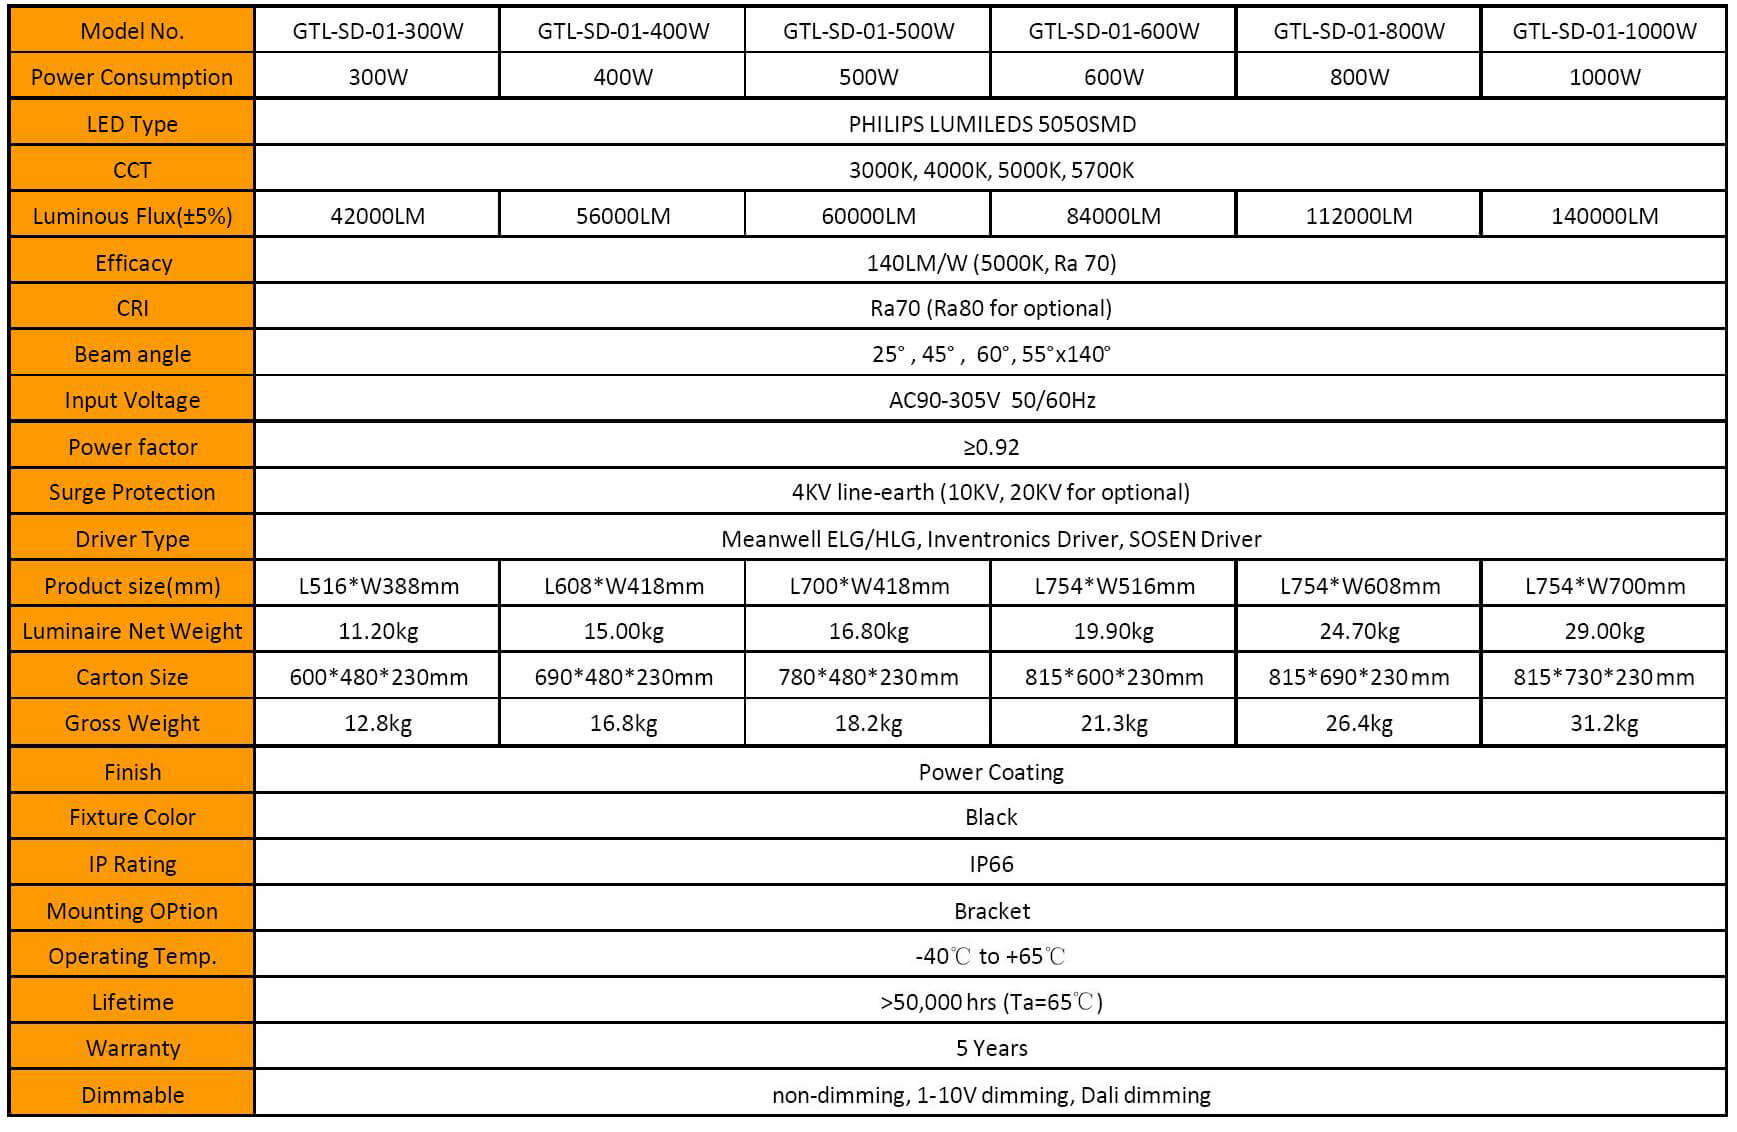 Specifications of Hi-Power LED Sport Light